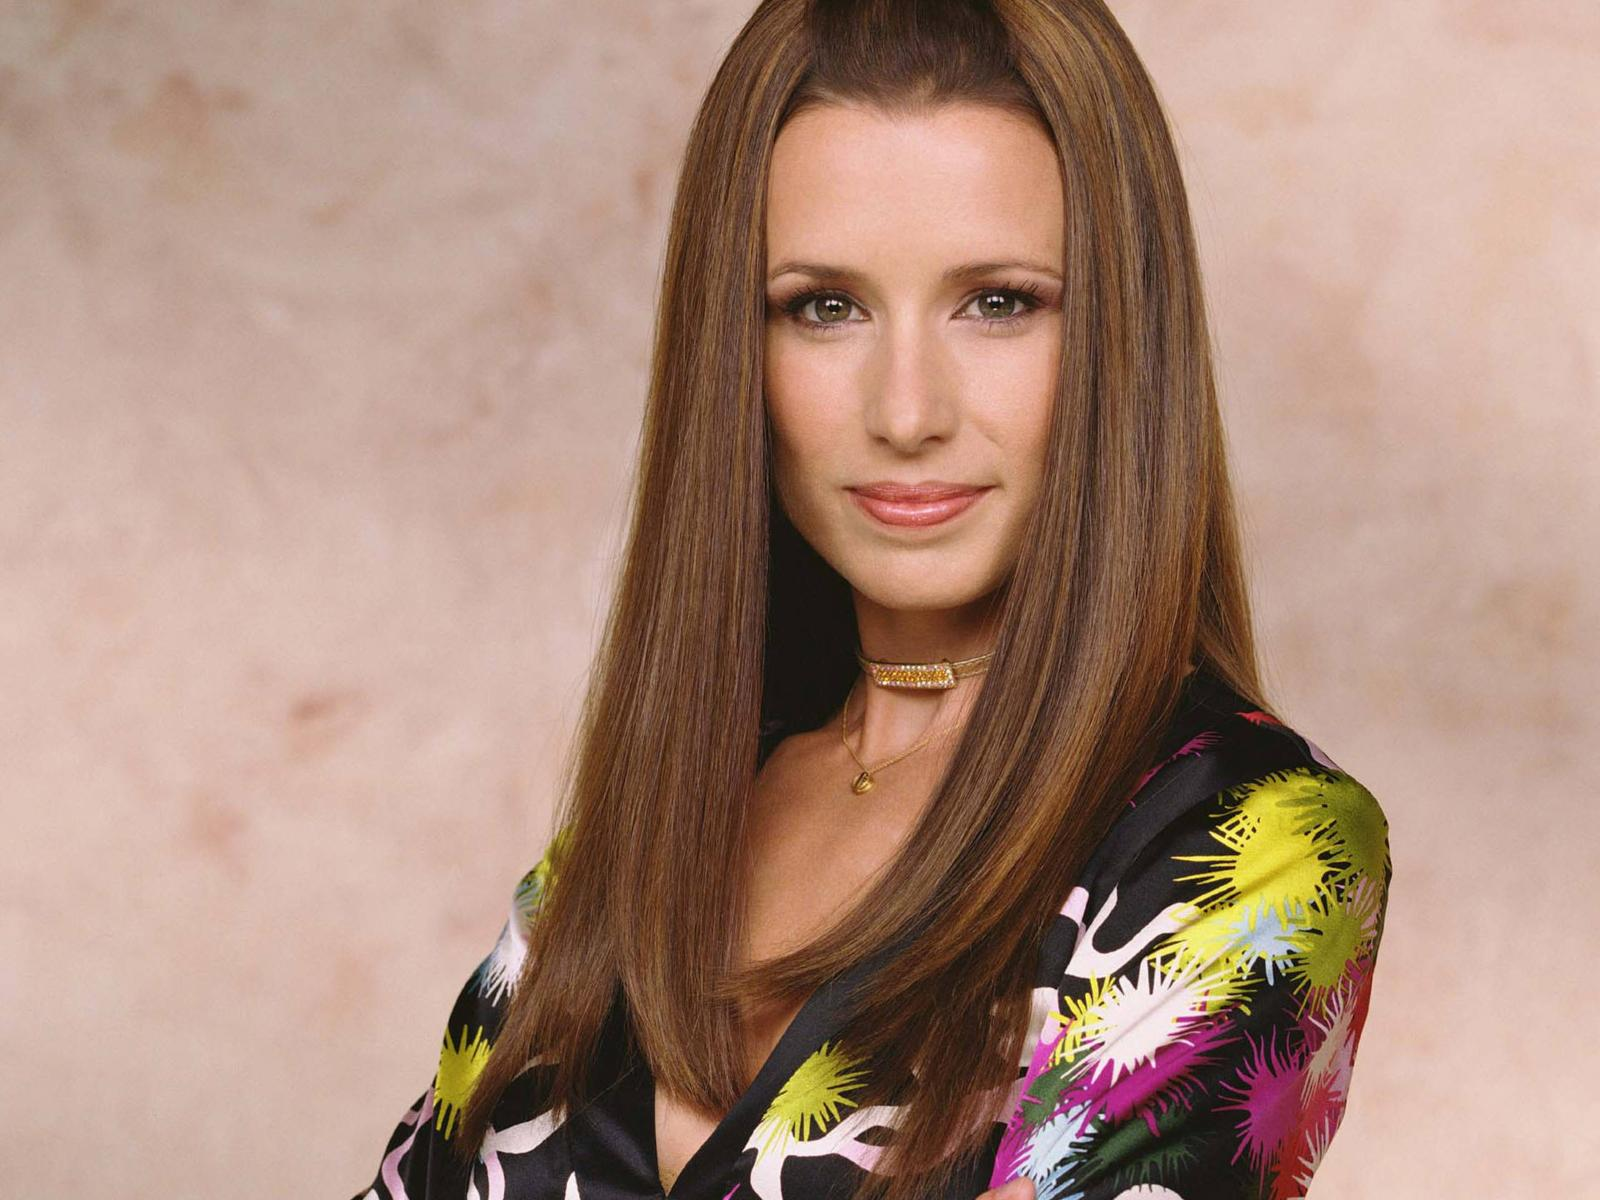 Copy of shawnee_smith_desktop_wallpaper